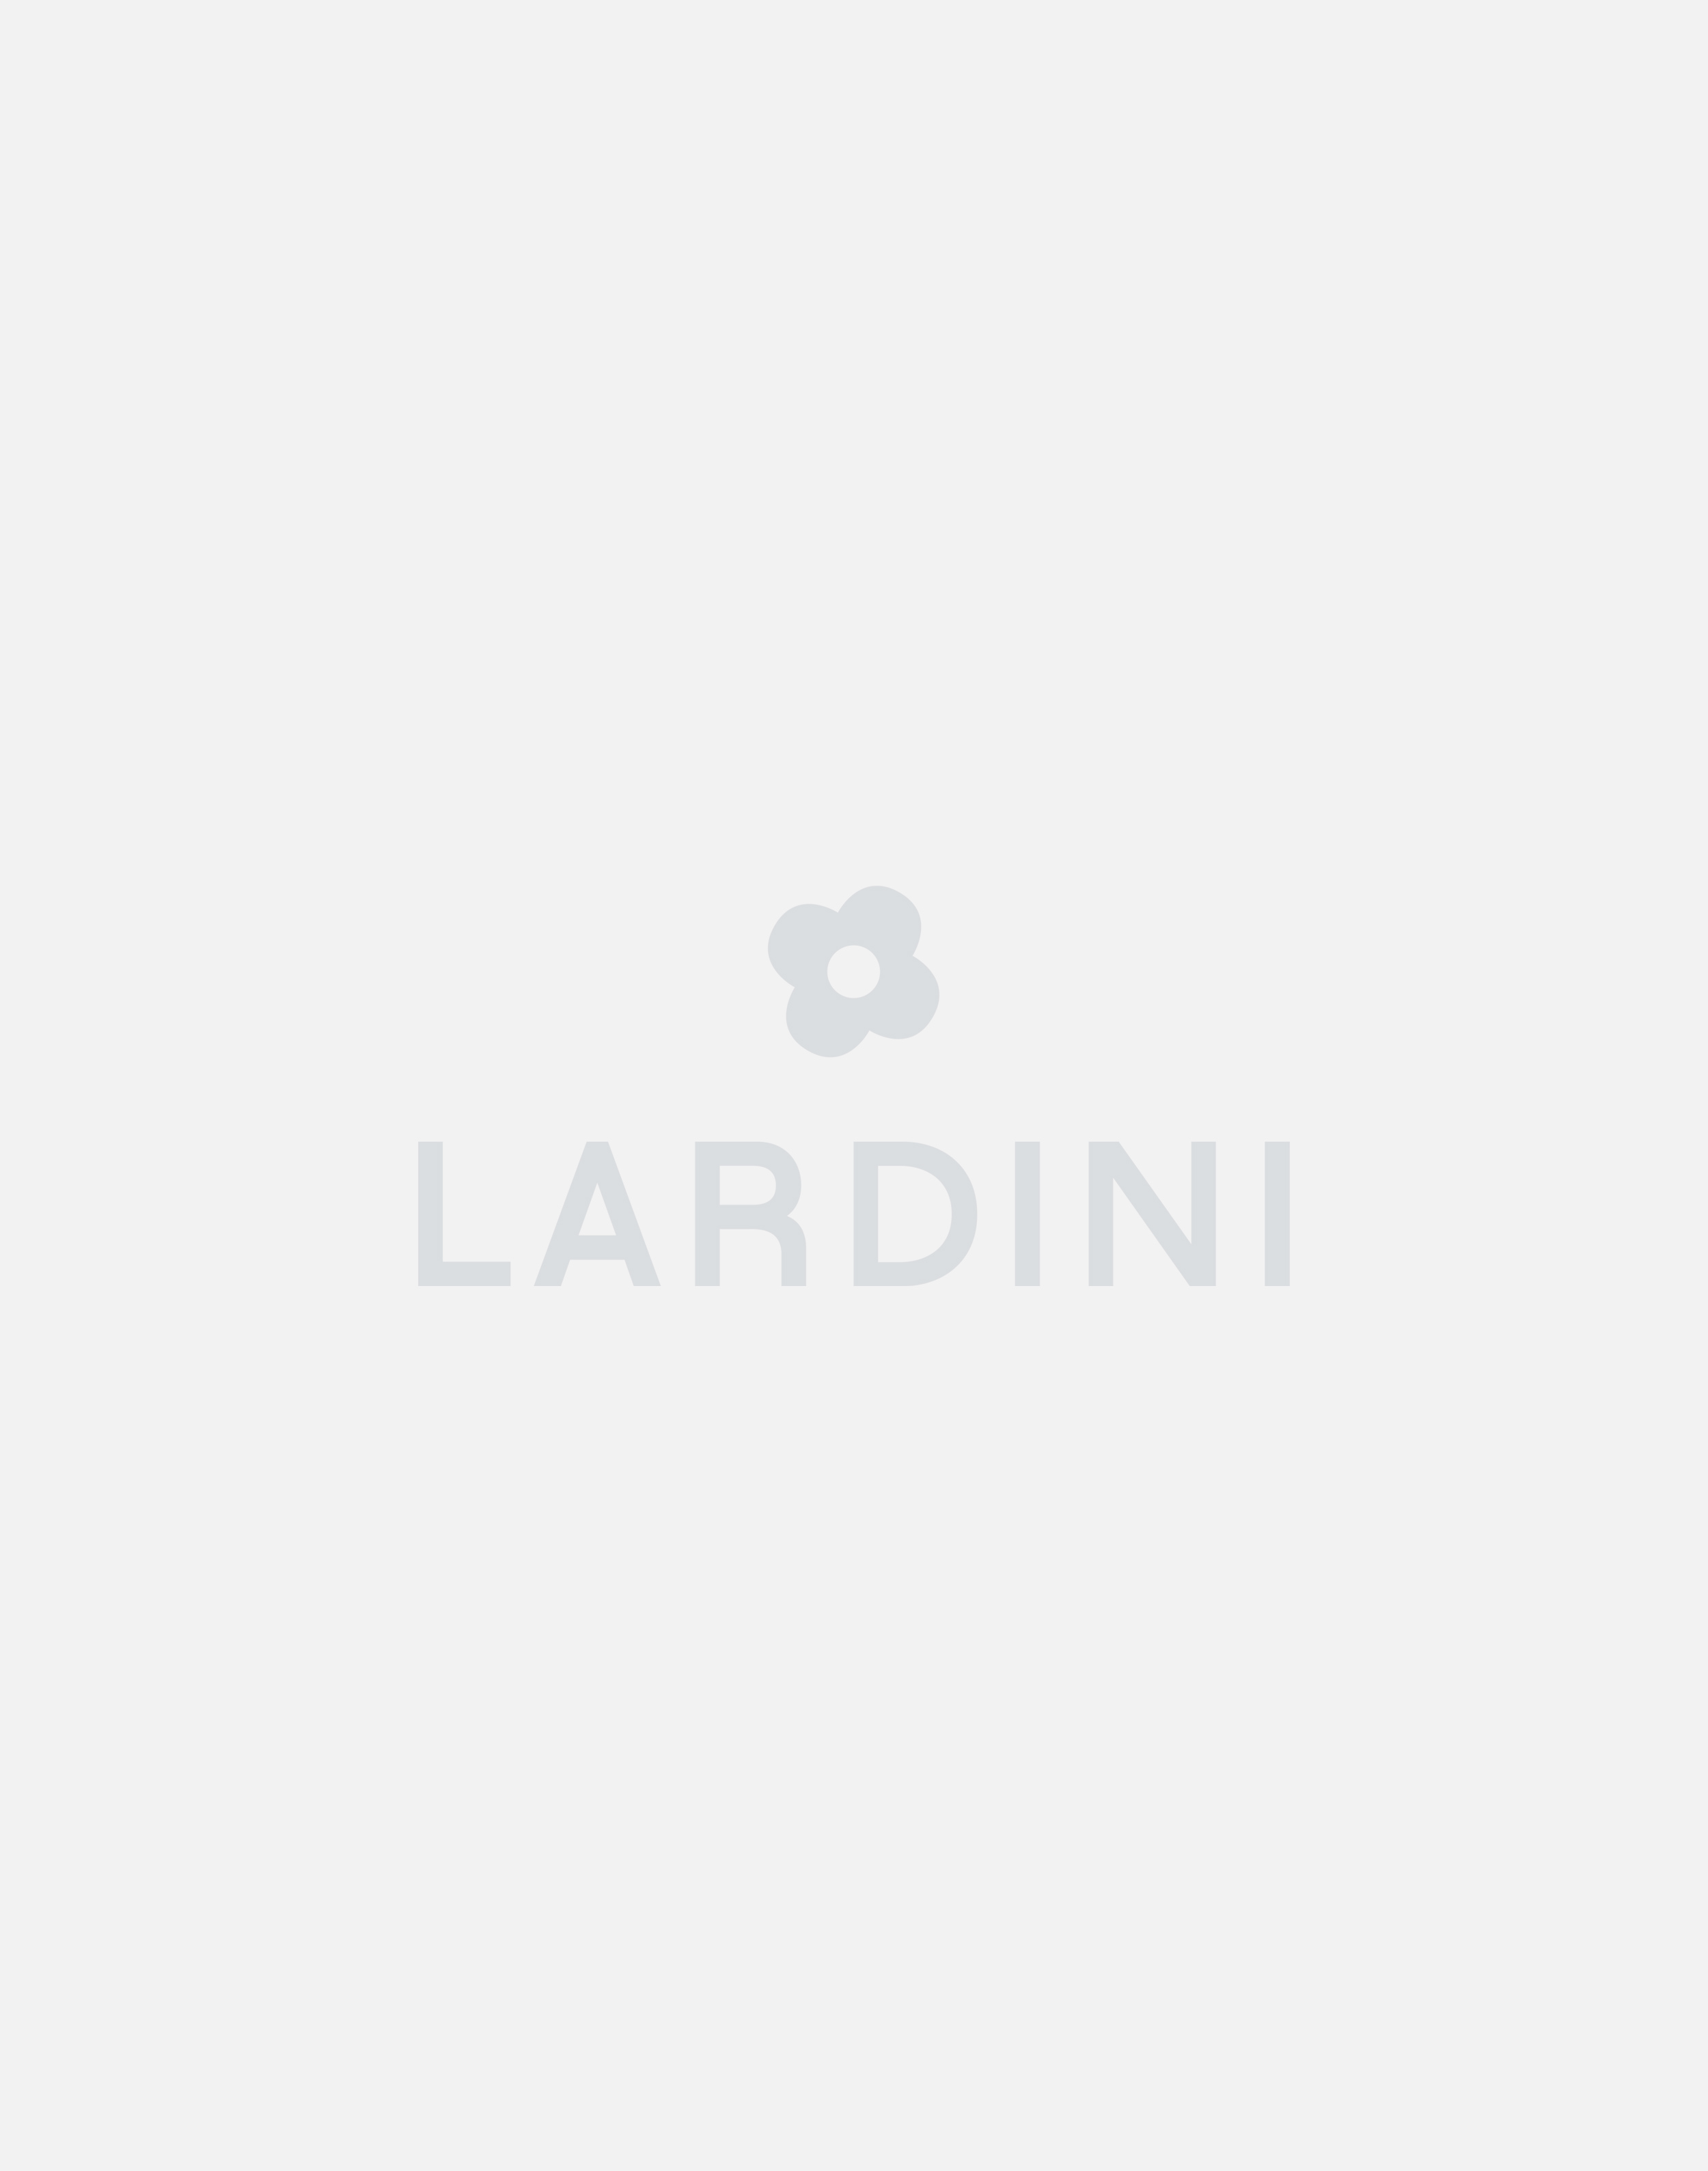 Beig and teal printed pocket square